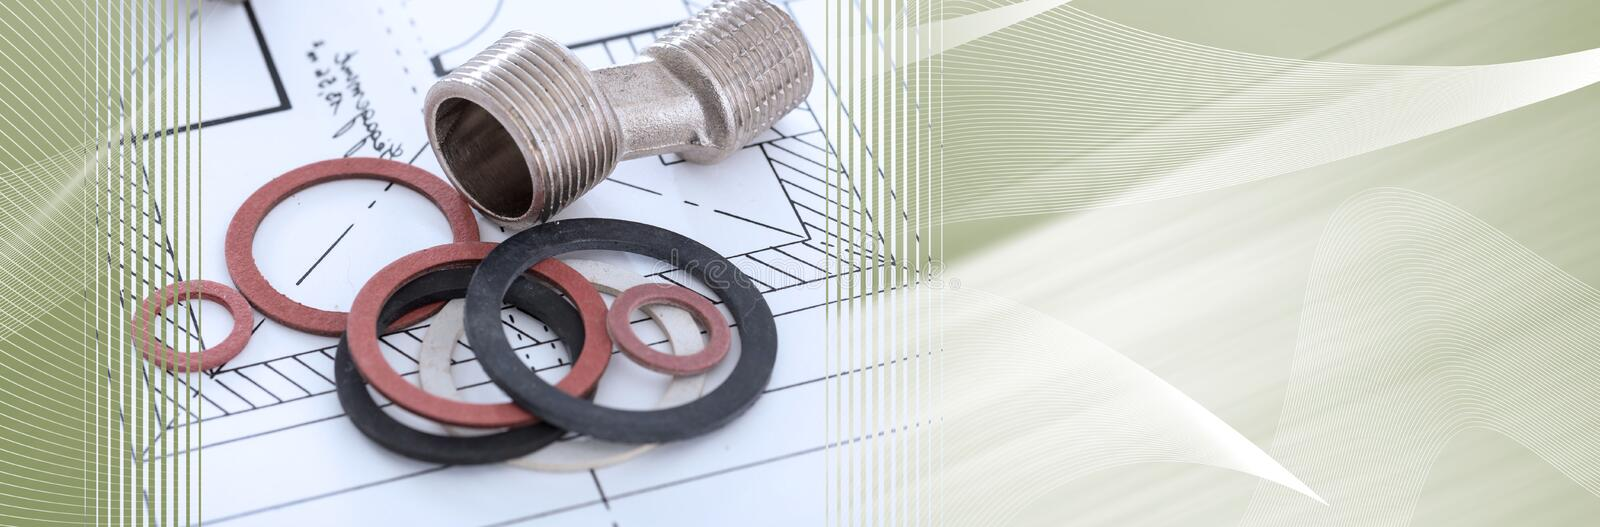 Plumbing fittings and gaskets; panoramic banner. Plumbing fittings and gaskets on a plan; panoramic banner stock photo